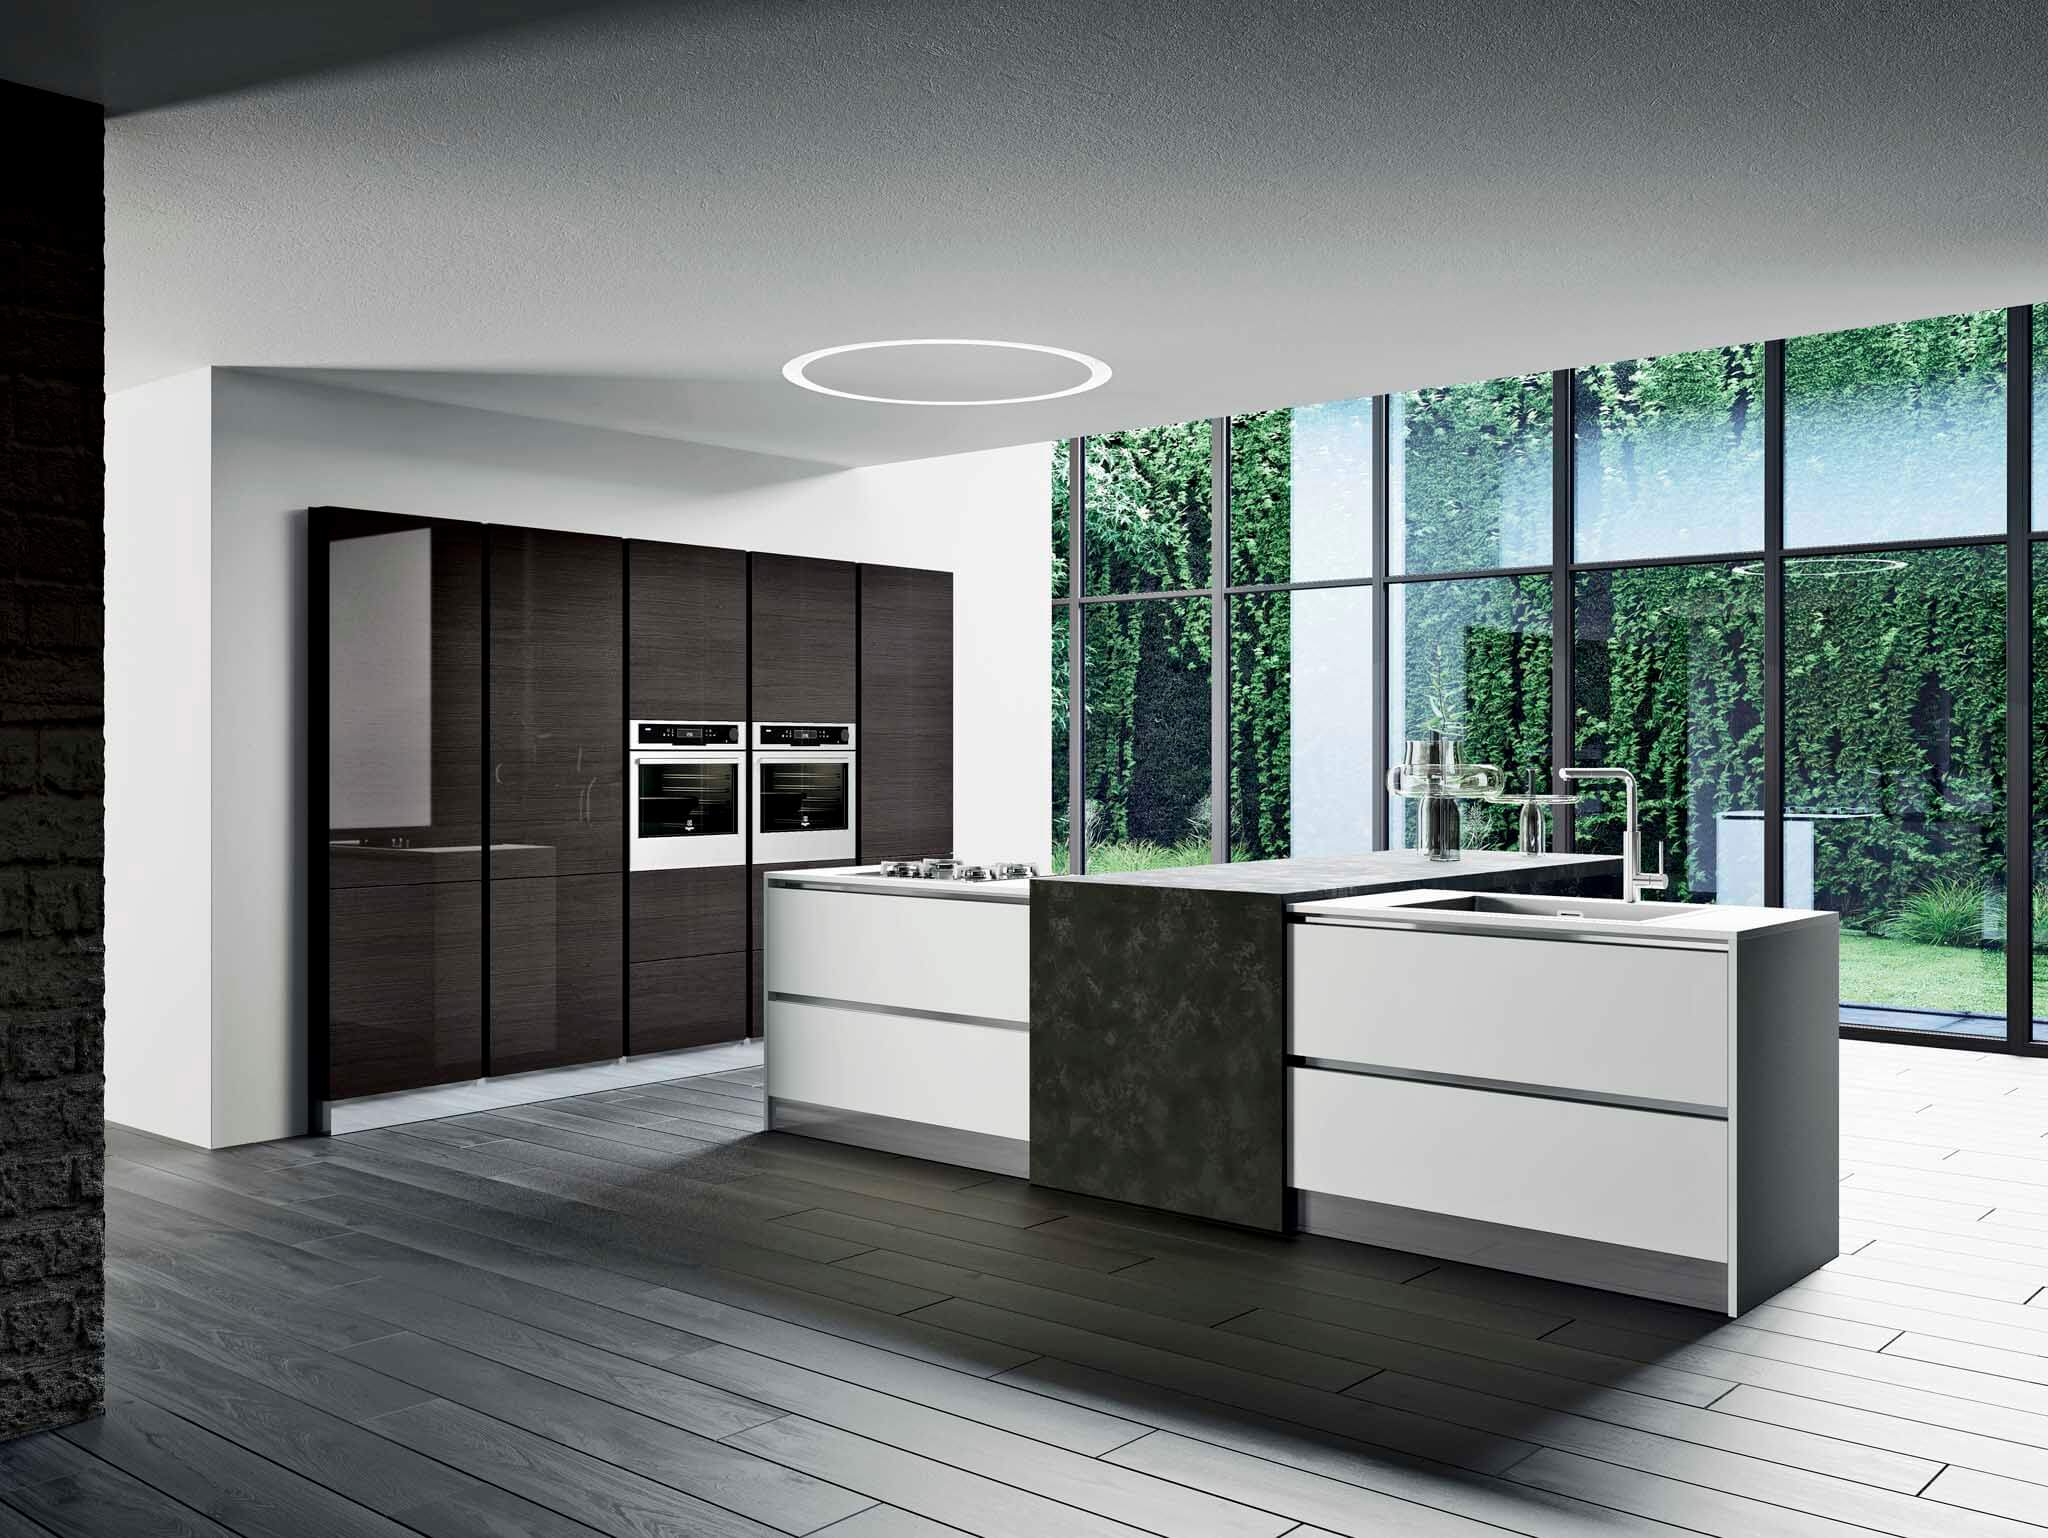 Kalea contemporary italian kitchen cabinet Base units for island: Wood Eucalipto